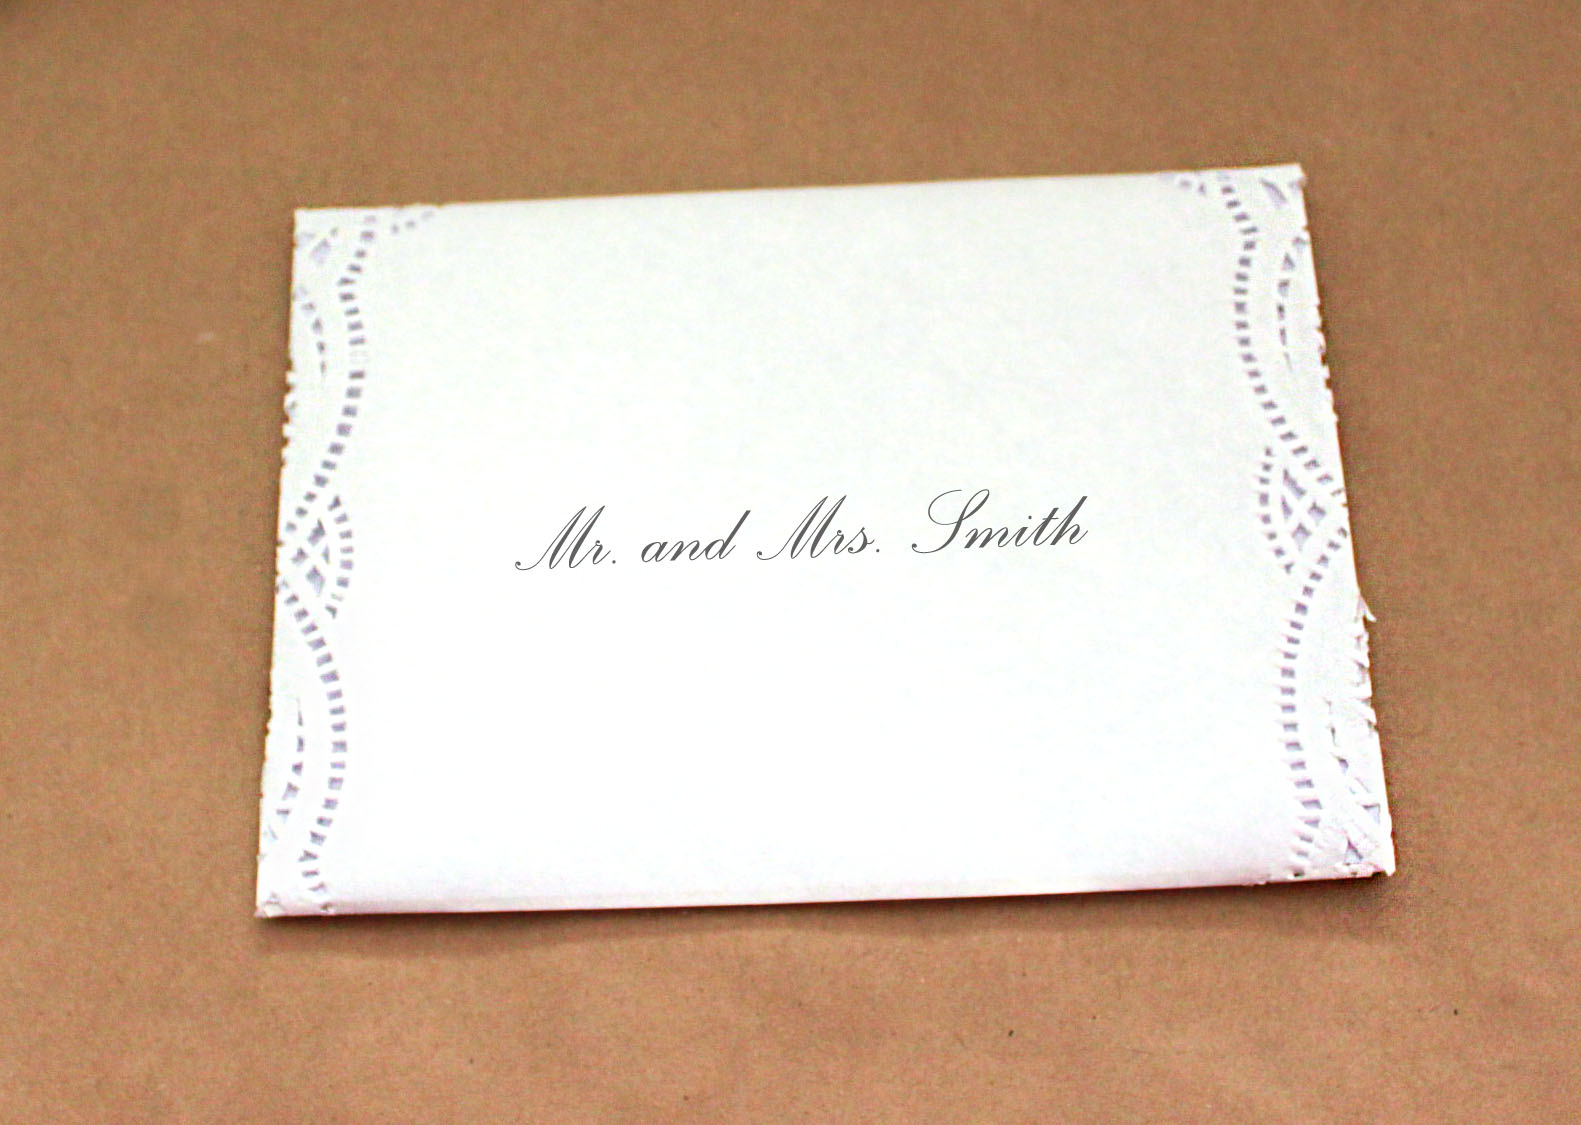 Address Wedding Gift Card Envelope : ... to help fold the rest of those envelopes and start addressing them